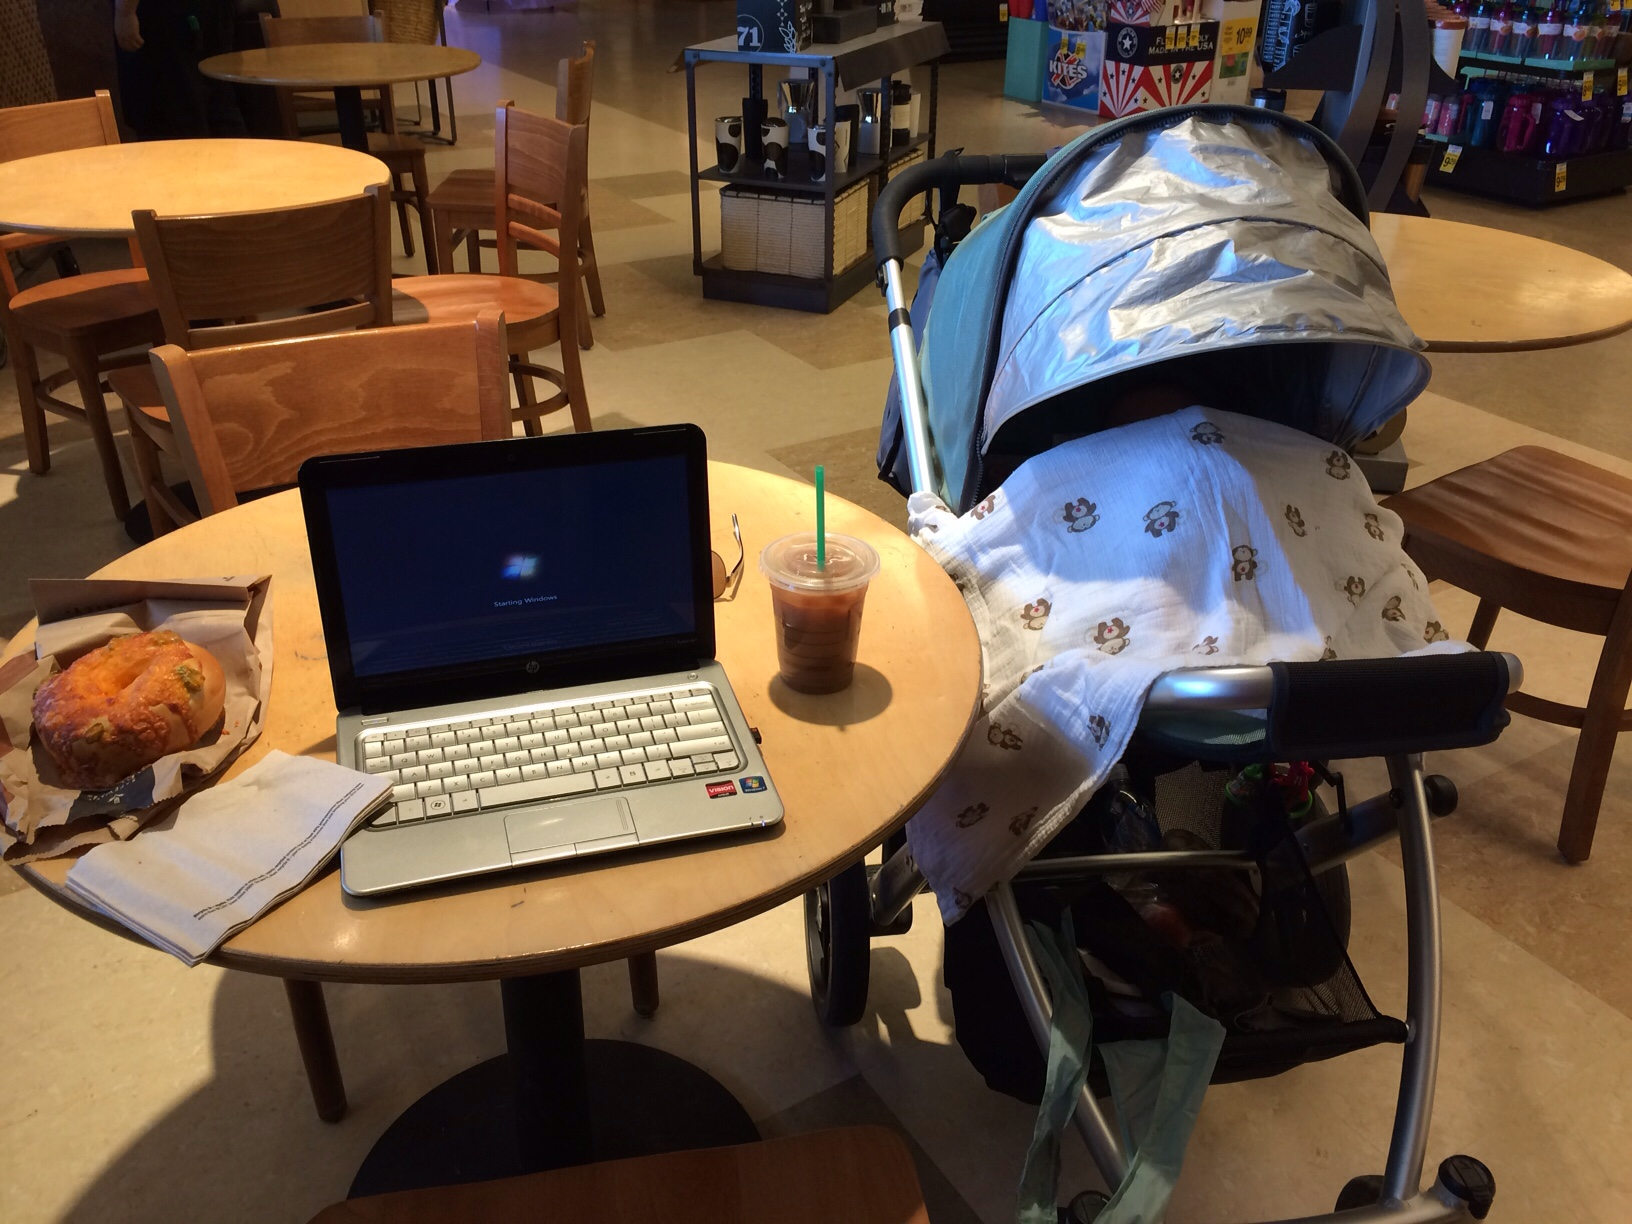 Working at Starbucks